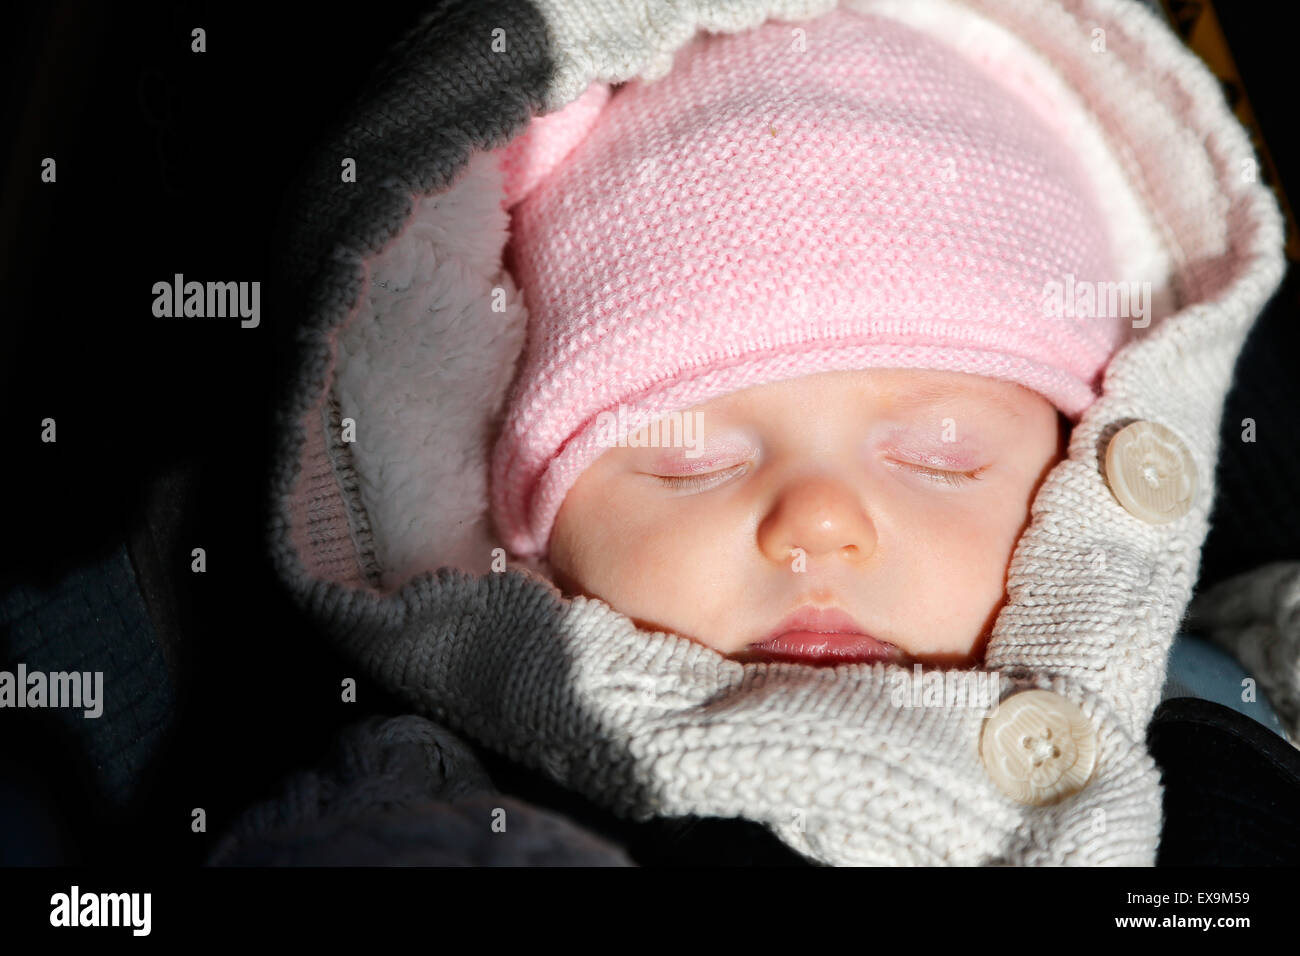 A baby wrapped in warm winter clothing, cosy and warm asleep in her pushchair despite the cold english winter - Stock Image